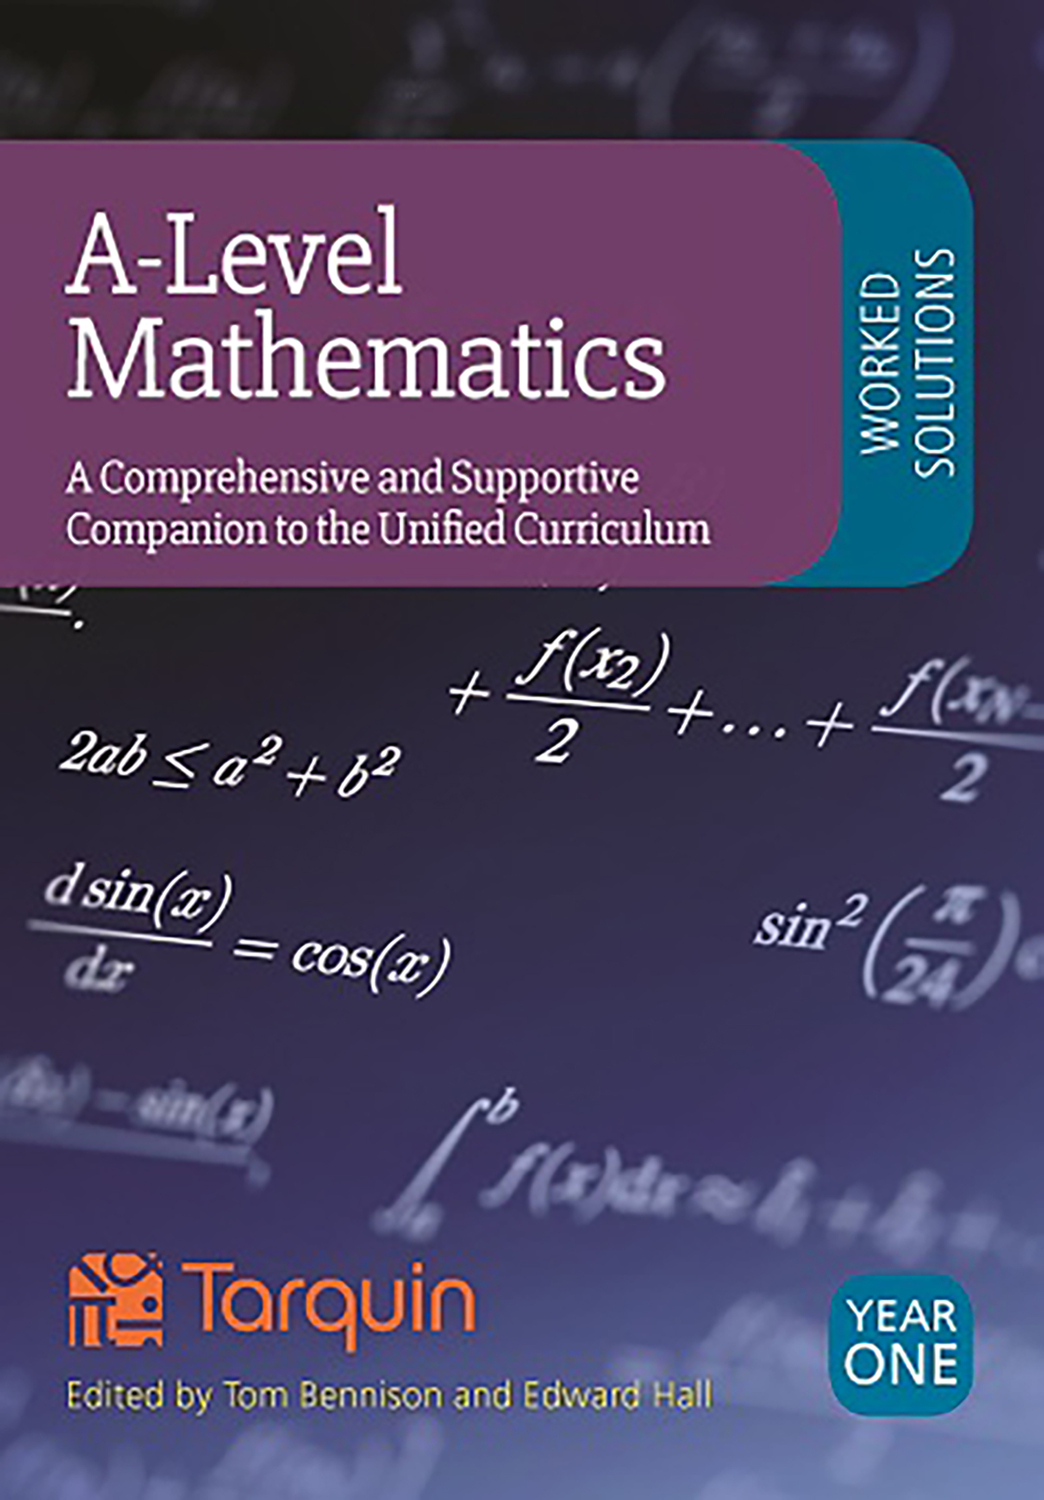 A-Level Mathematics Worked Solutions